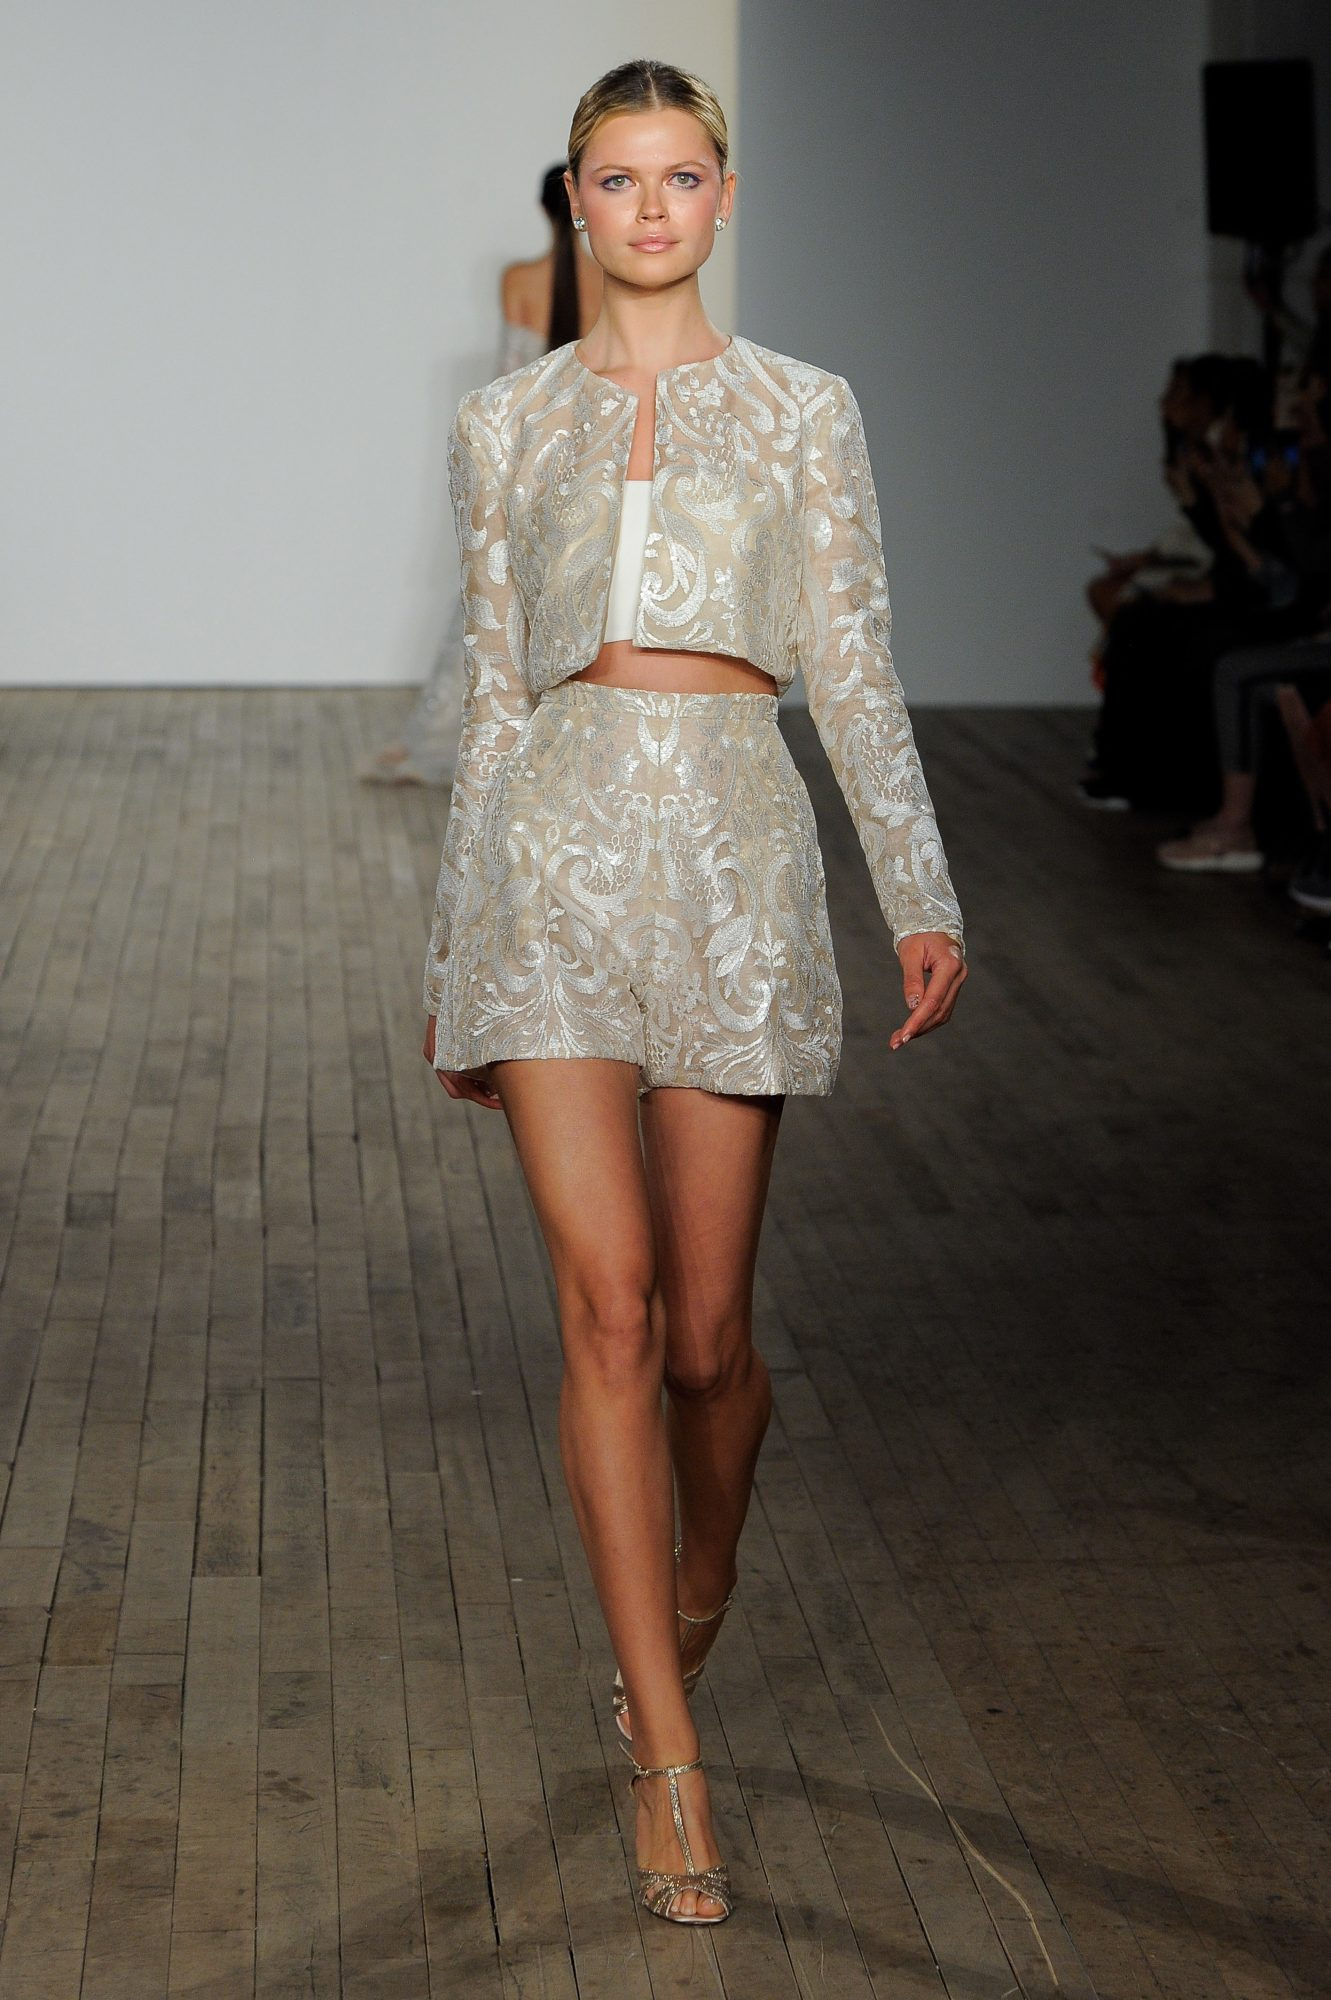 haley paige fall 2019 short 2 separates with jacket wedding dress